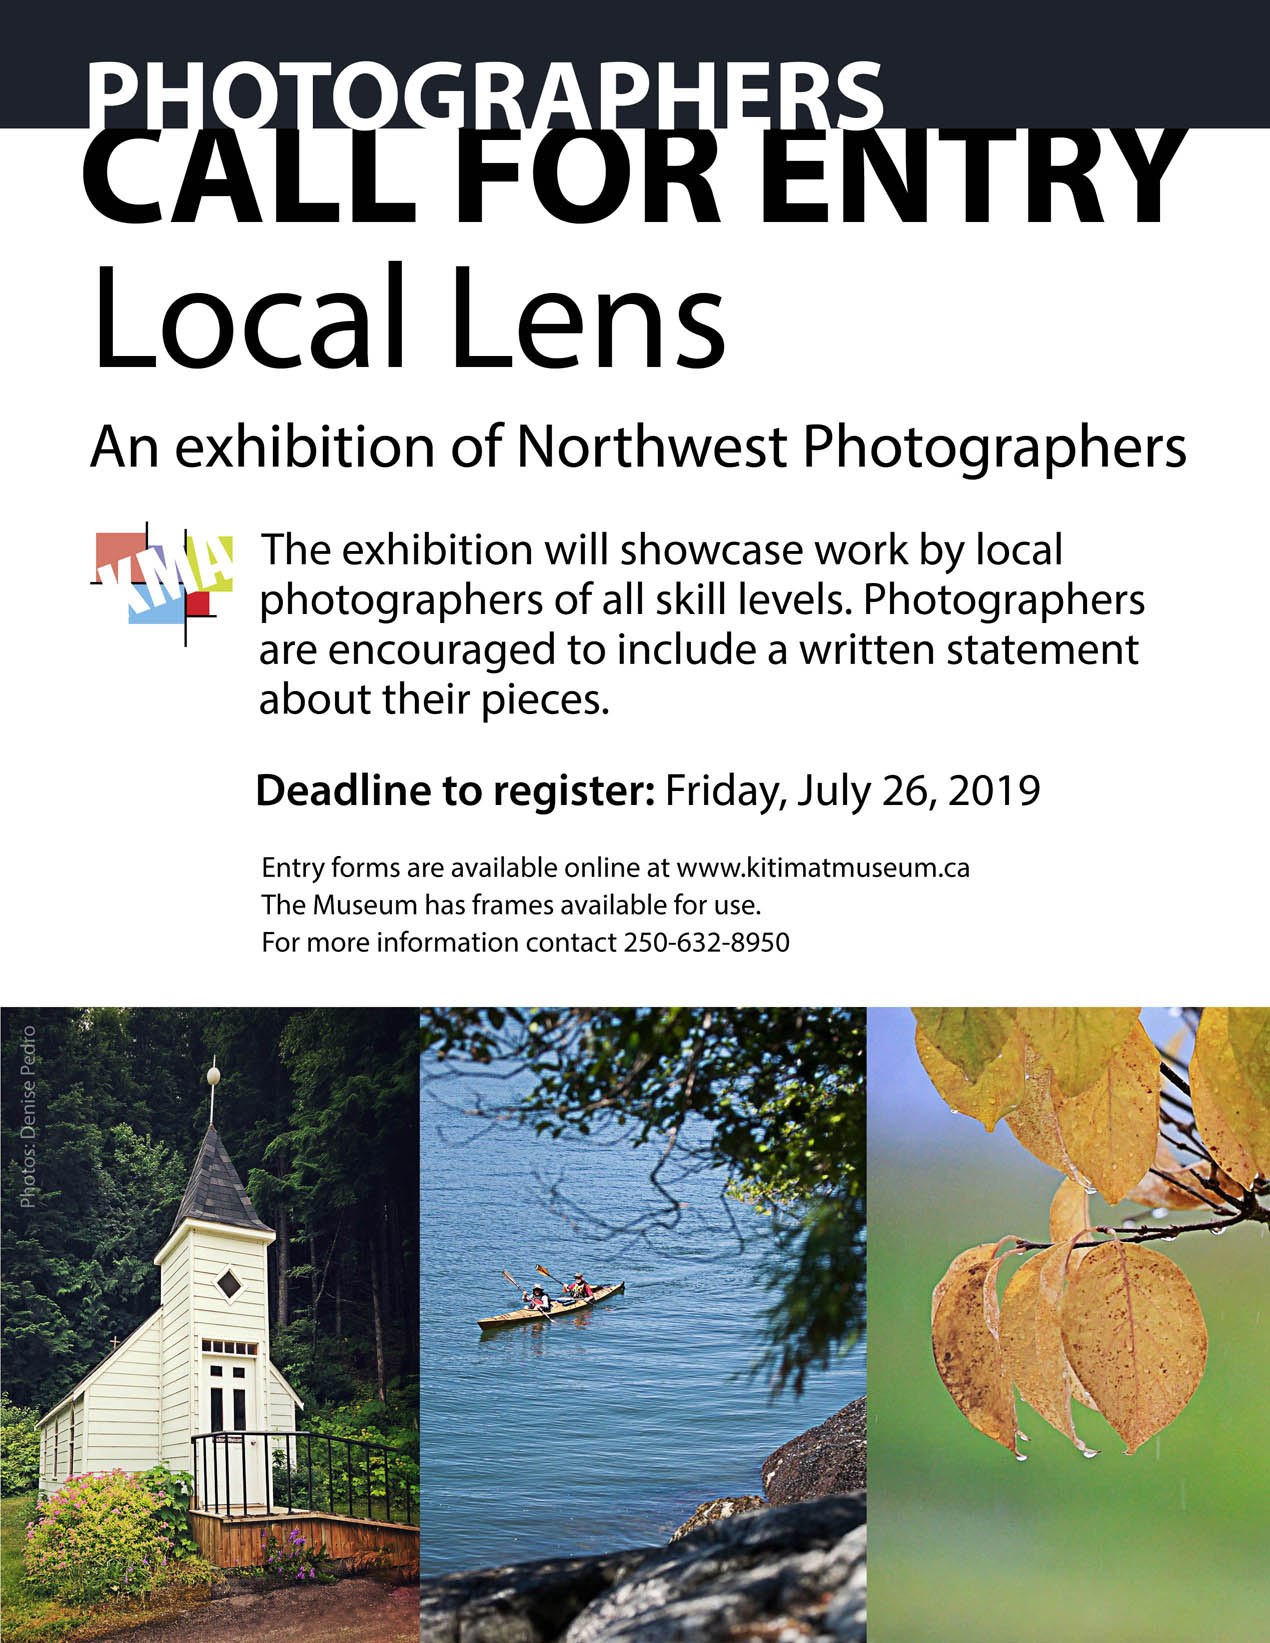 Poster describing the photography Call for Entry